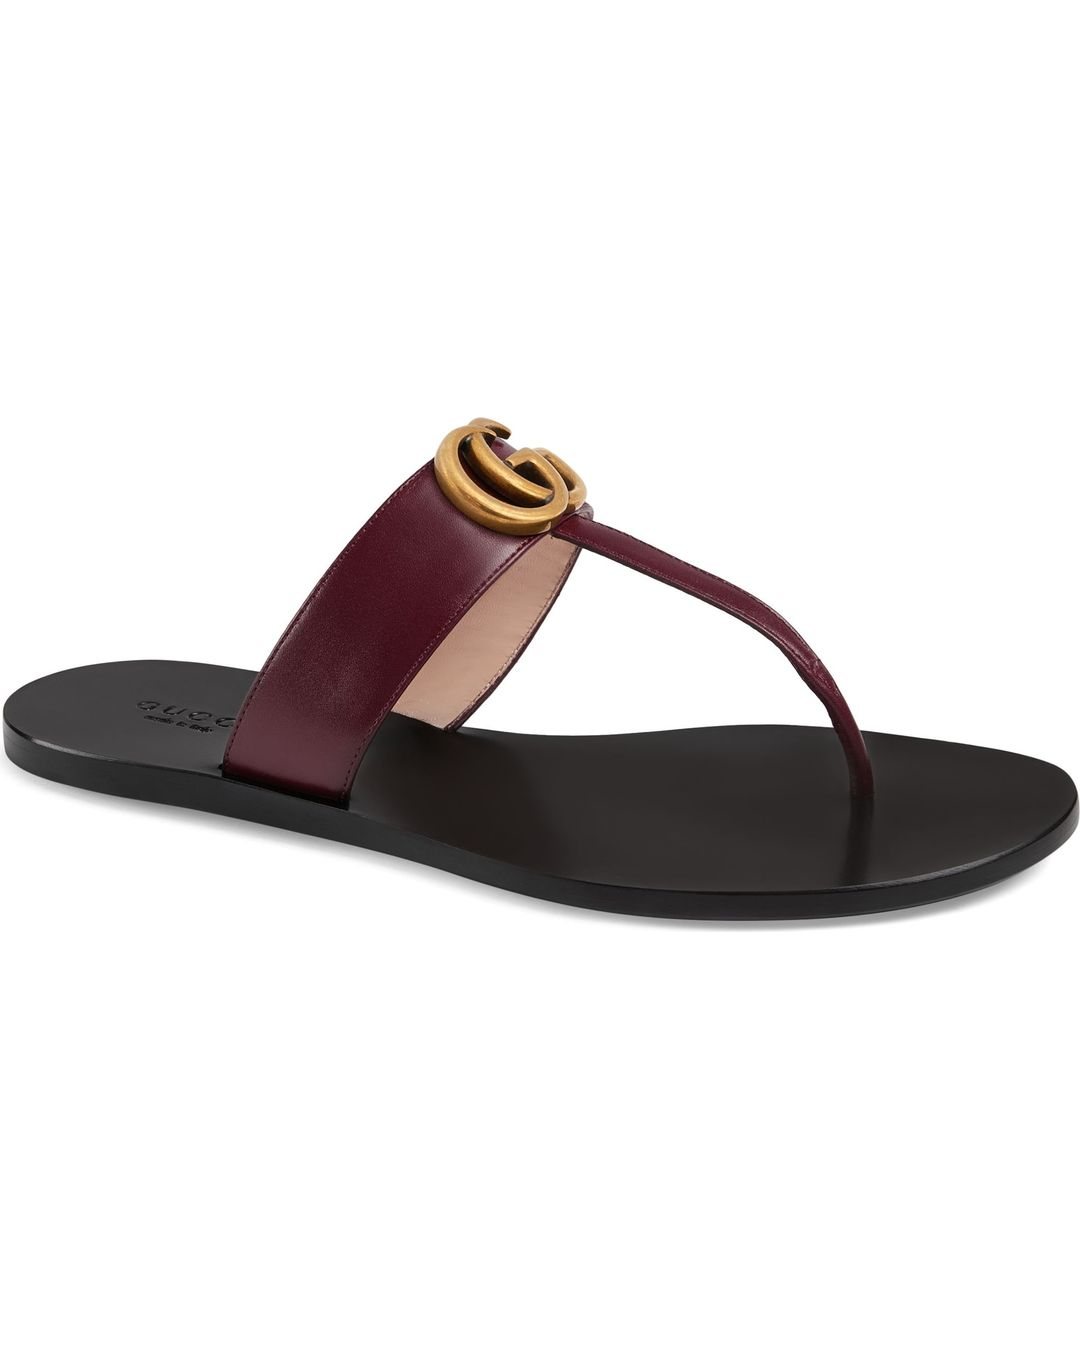 6af8c39d85ae Gucci Leather Thong Sandal With Double G Reviews